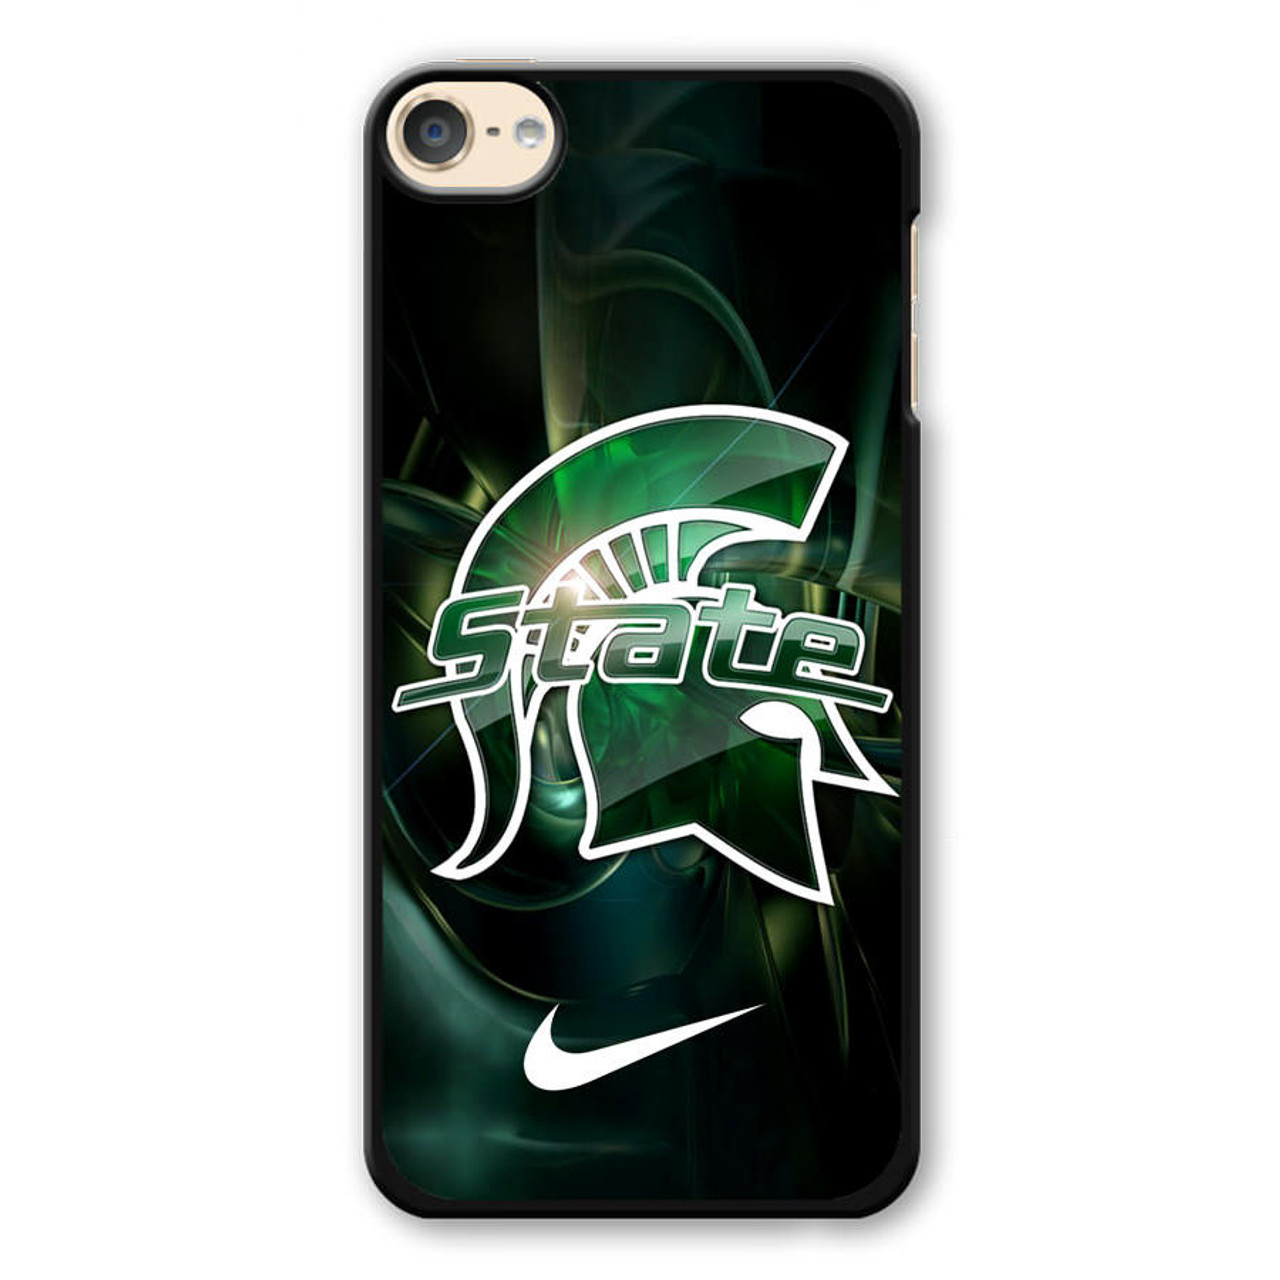 online retailer 79539 0c159 Michigan State Nike iPod Touch 6 Case